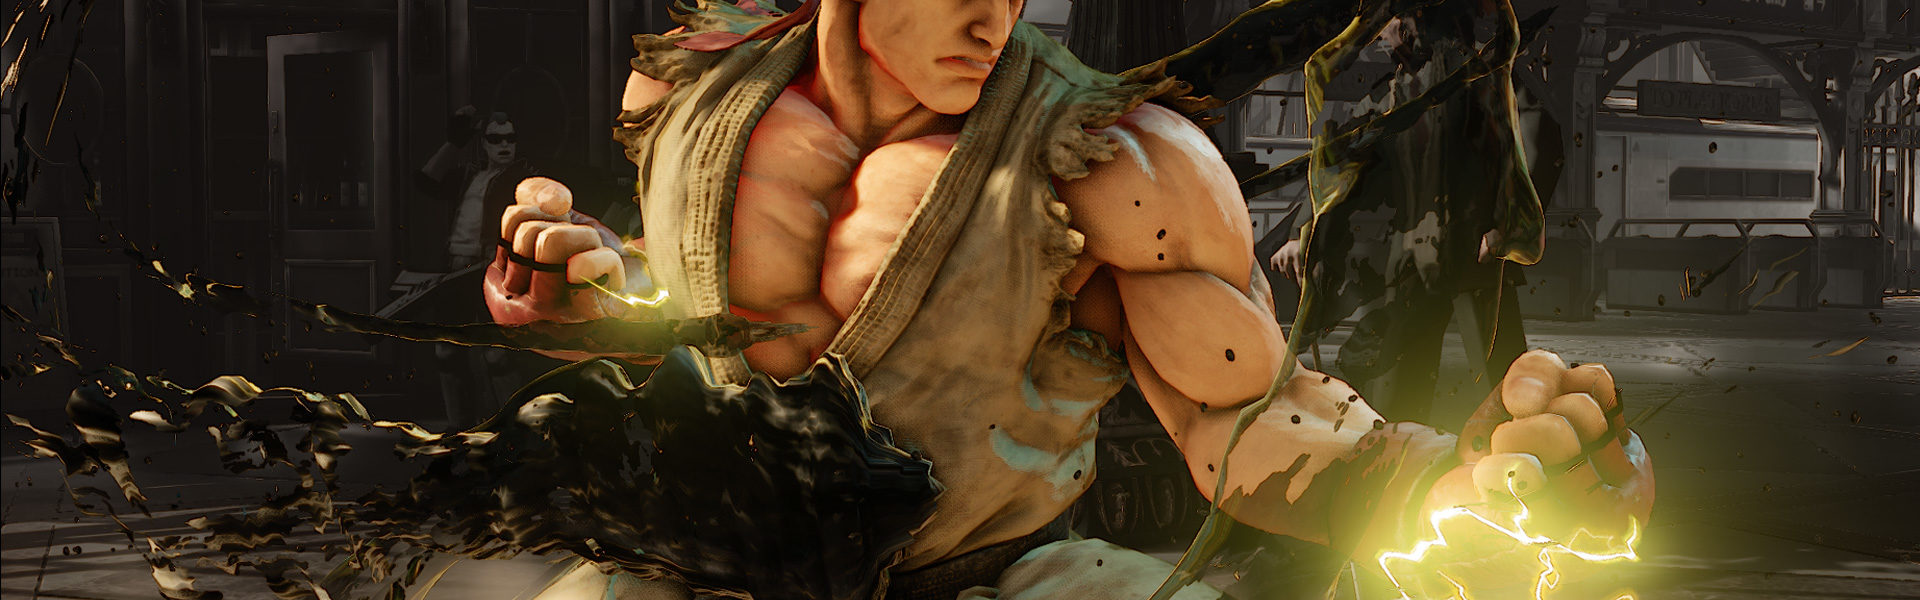 Neue Street Fighter Screens